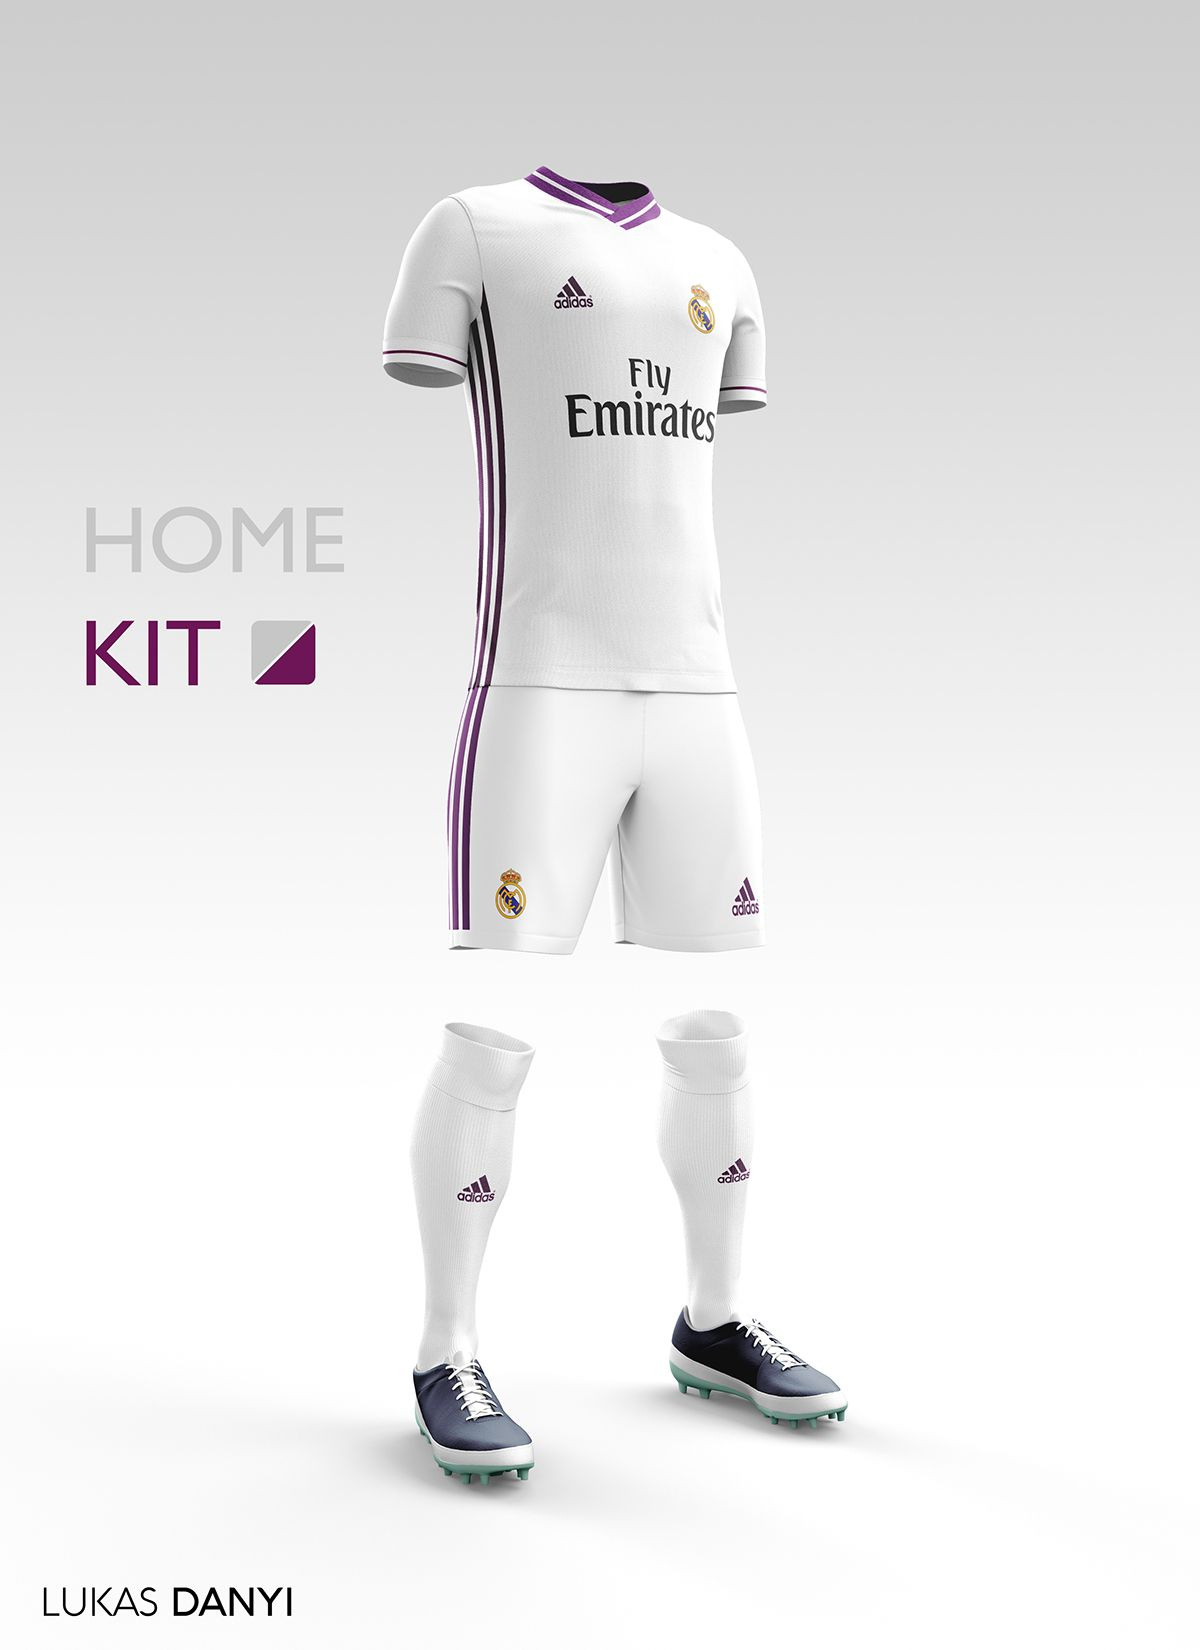 512x512 galatasaray home kit pictures free download - I Designed Football Kits For Real Madrid Cf For The Upcoming Season 16 17